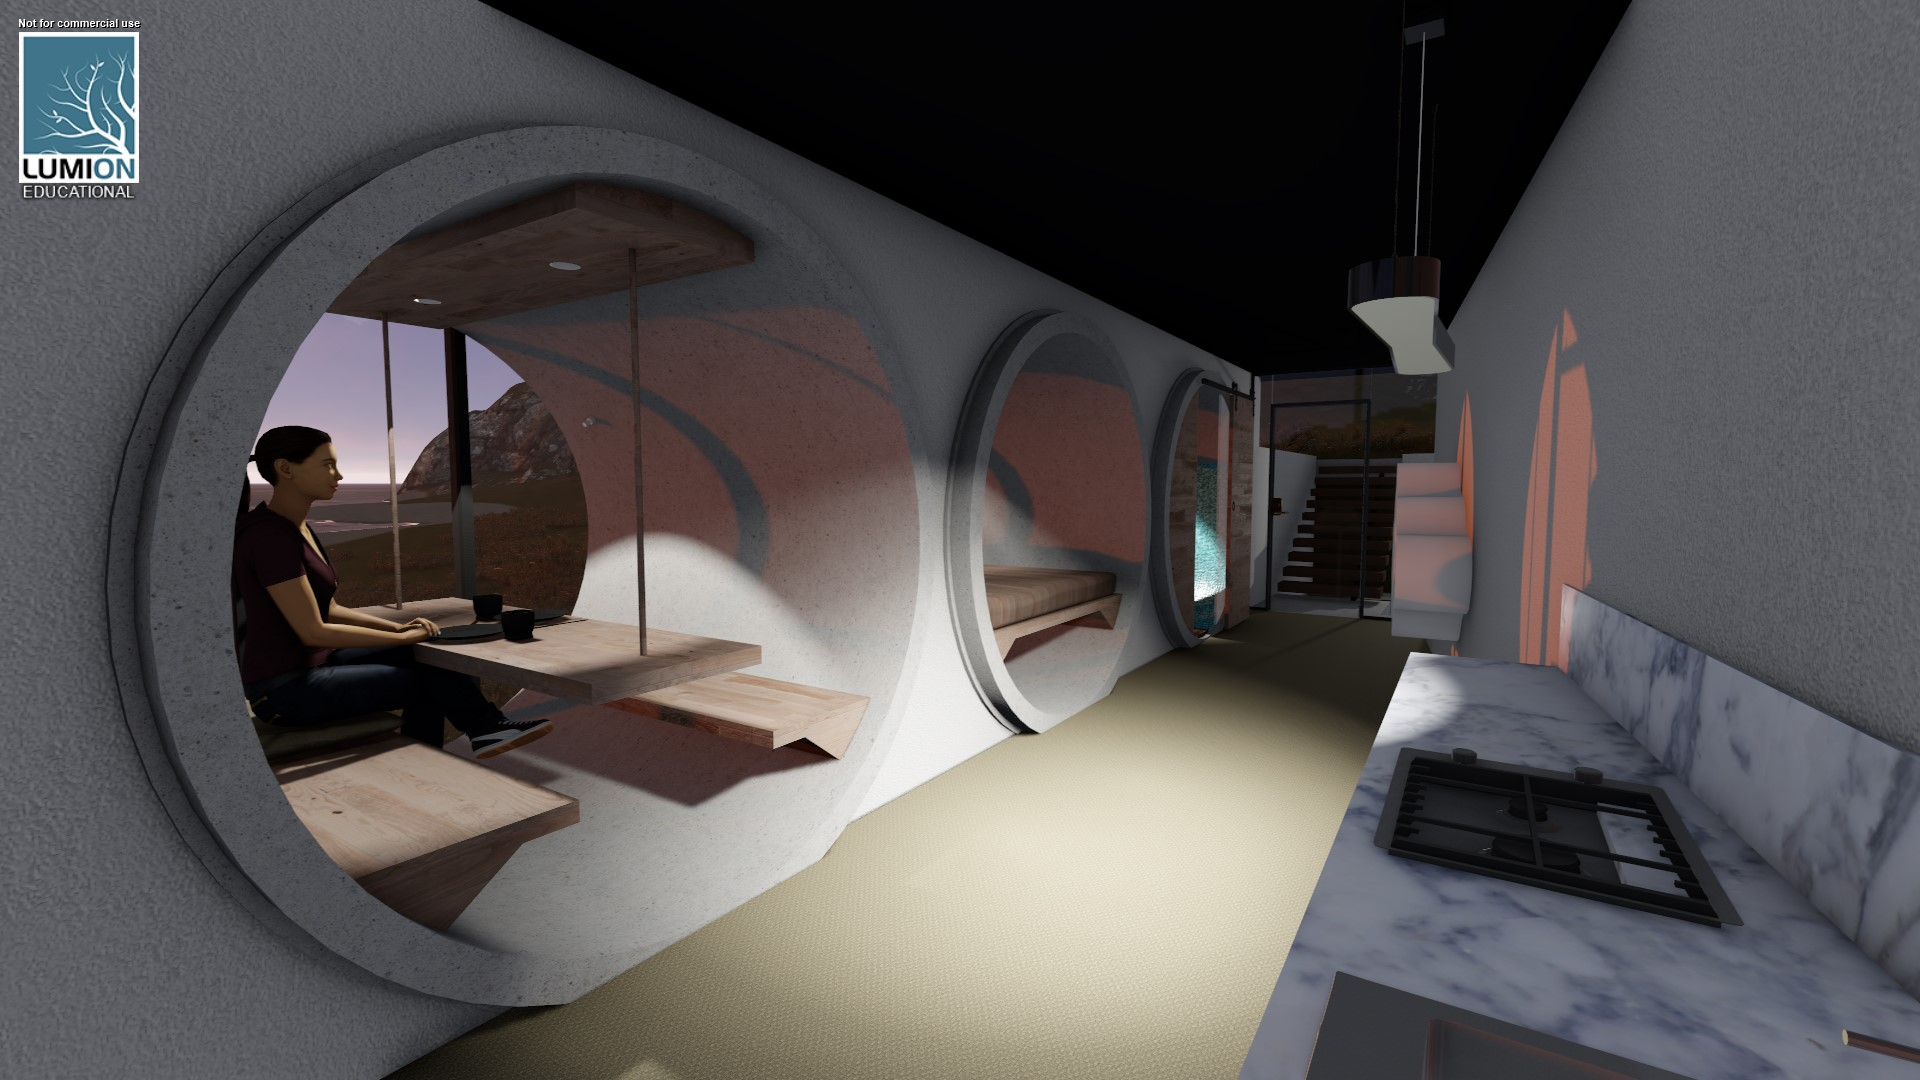 Interior render showing the 3 concrete pipes in a row